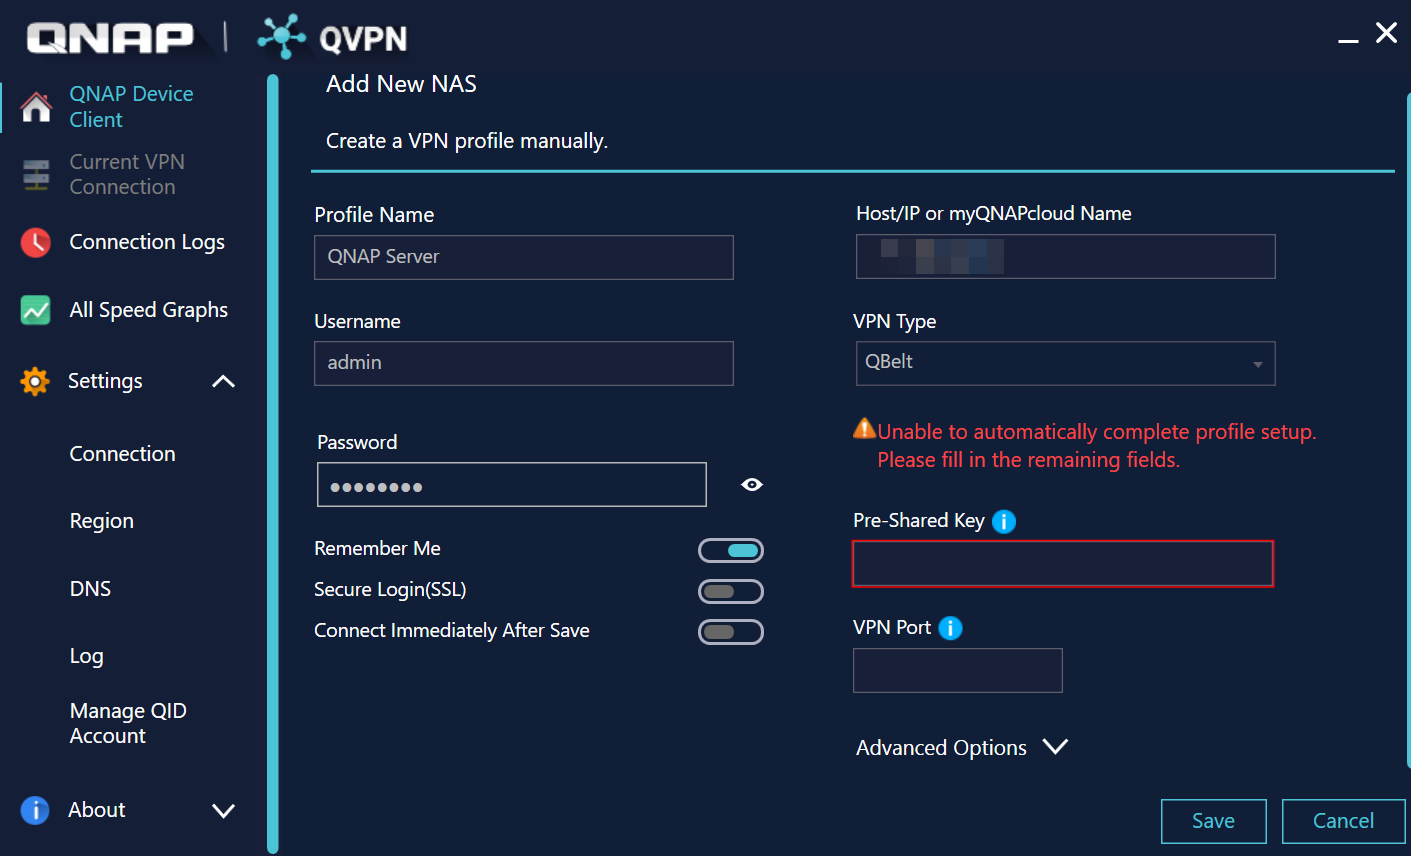 How to set up and use QVPN 2 0 ? | QNAP